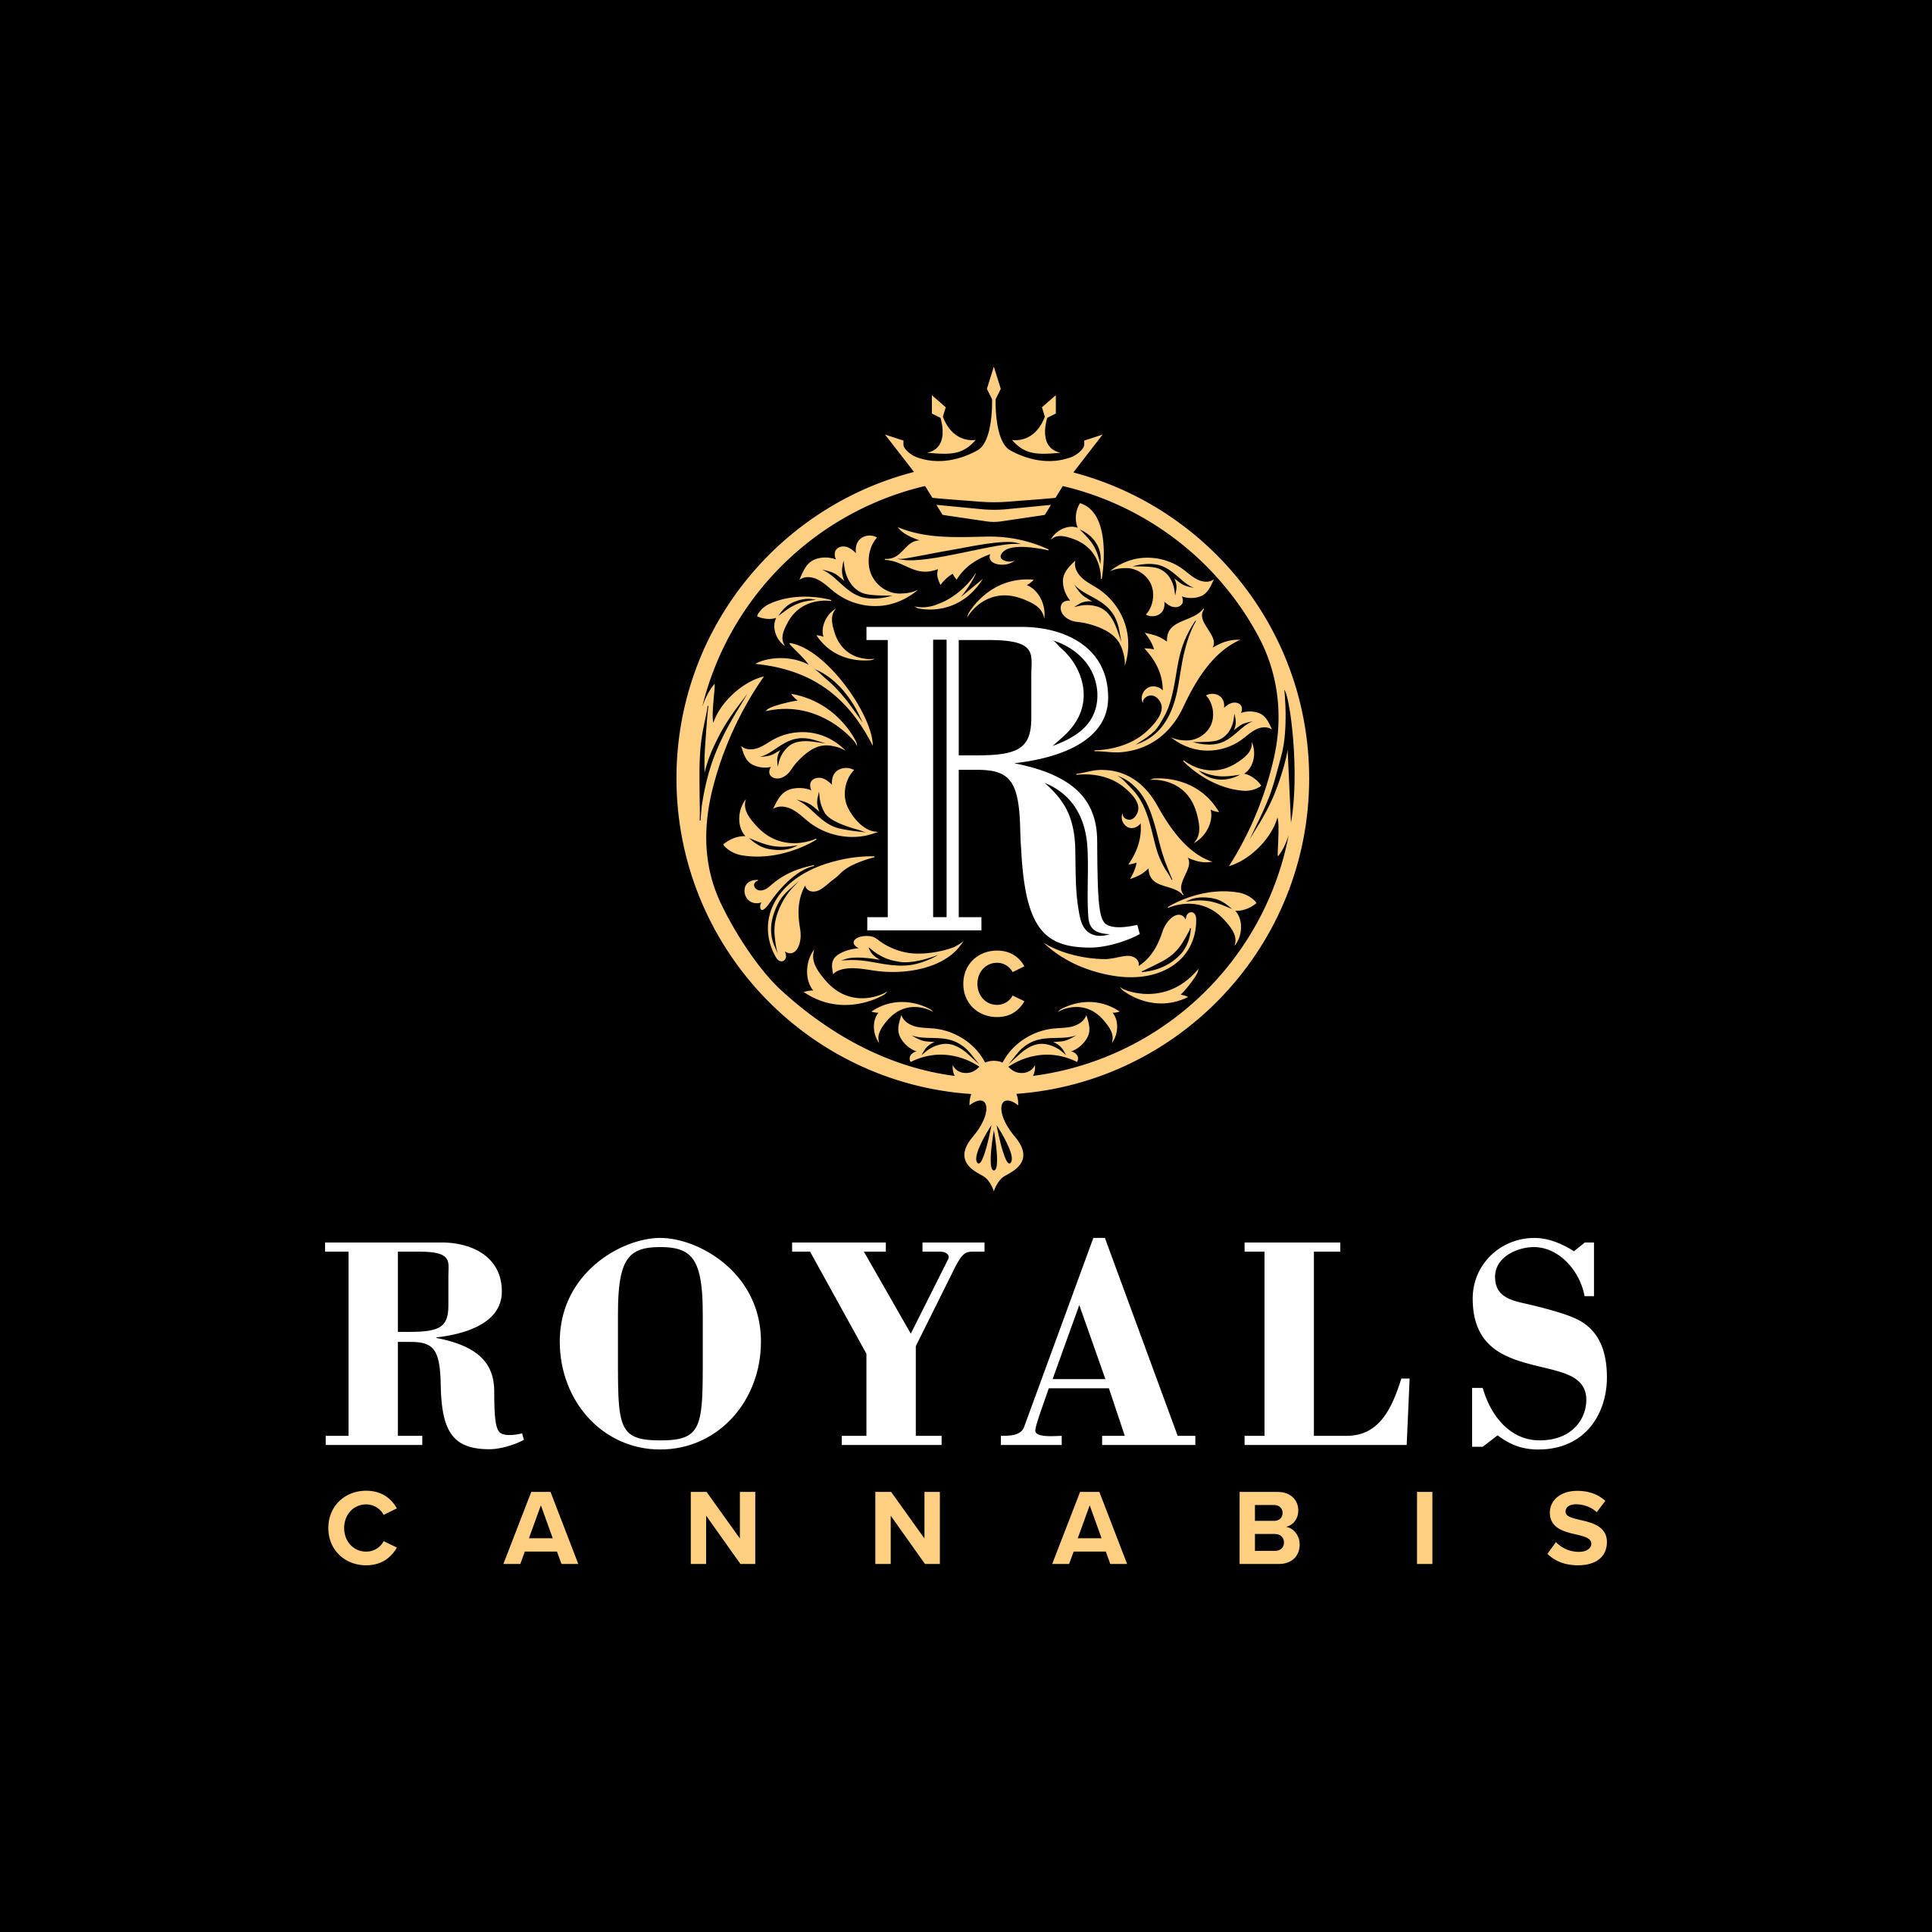 Royals Cannabis image 6